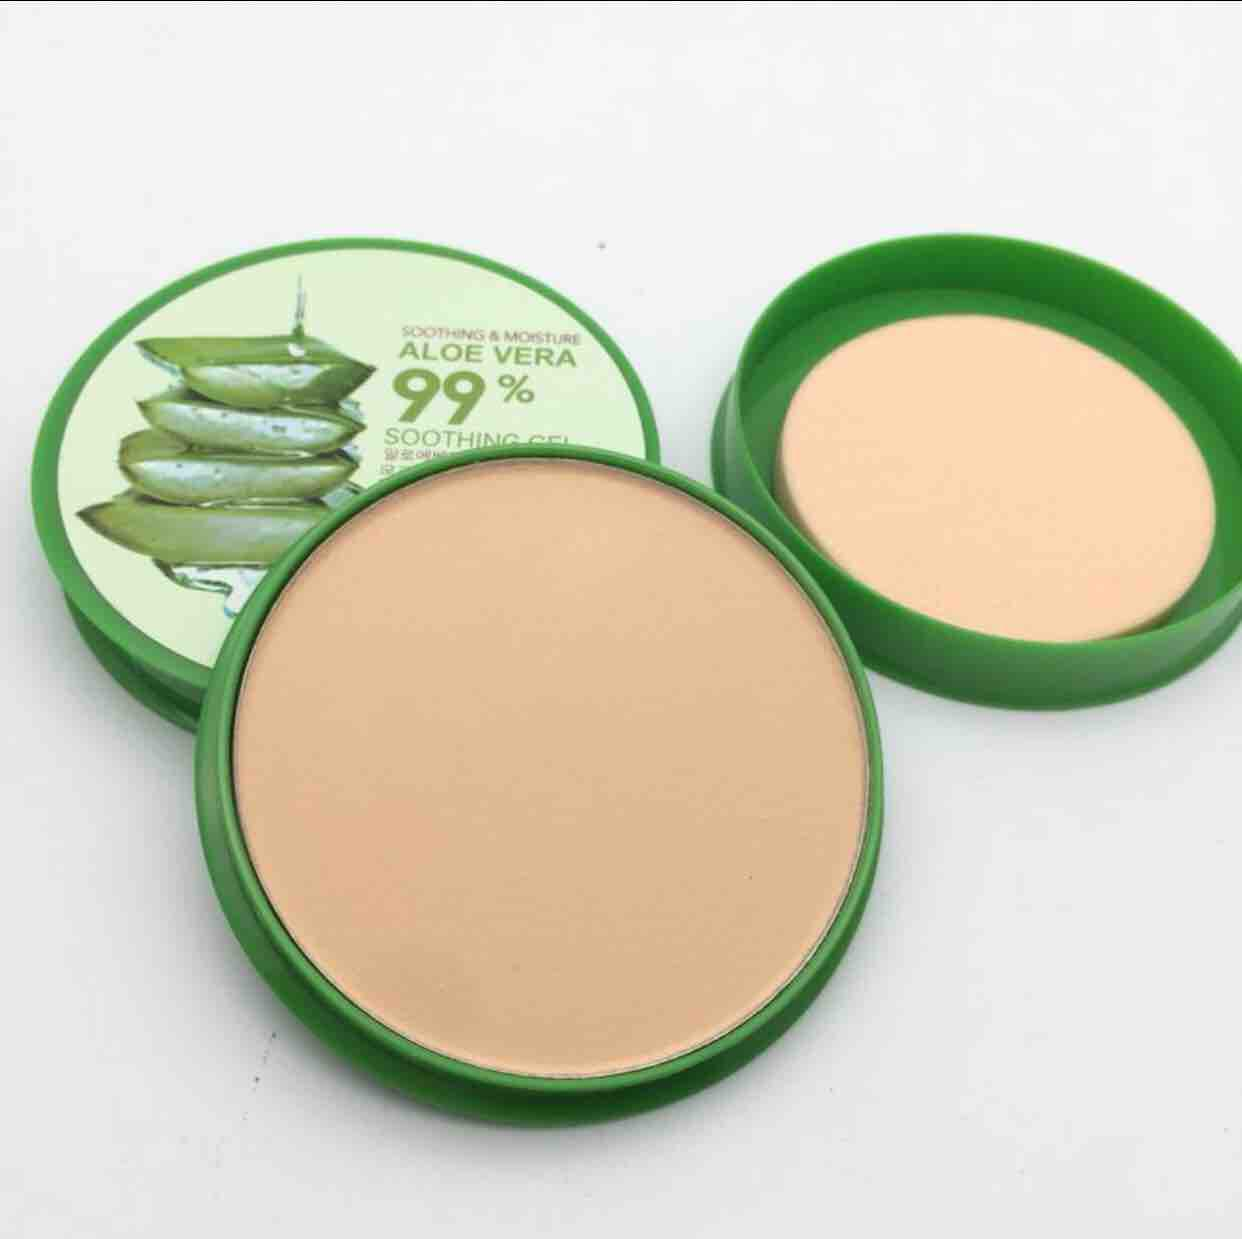 Aloe Vera Face Powder Moisturizing Foundation Pore Concealer Philippines